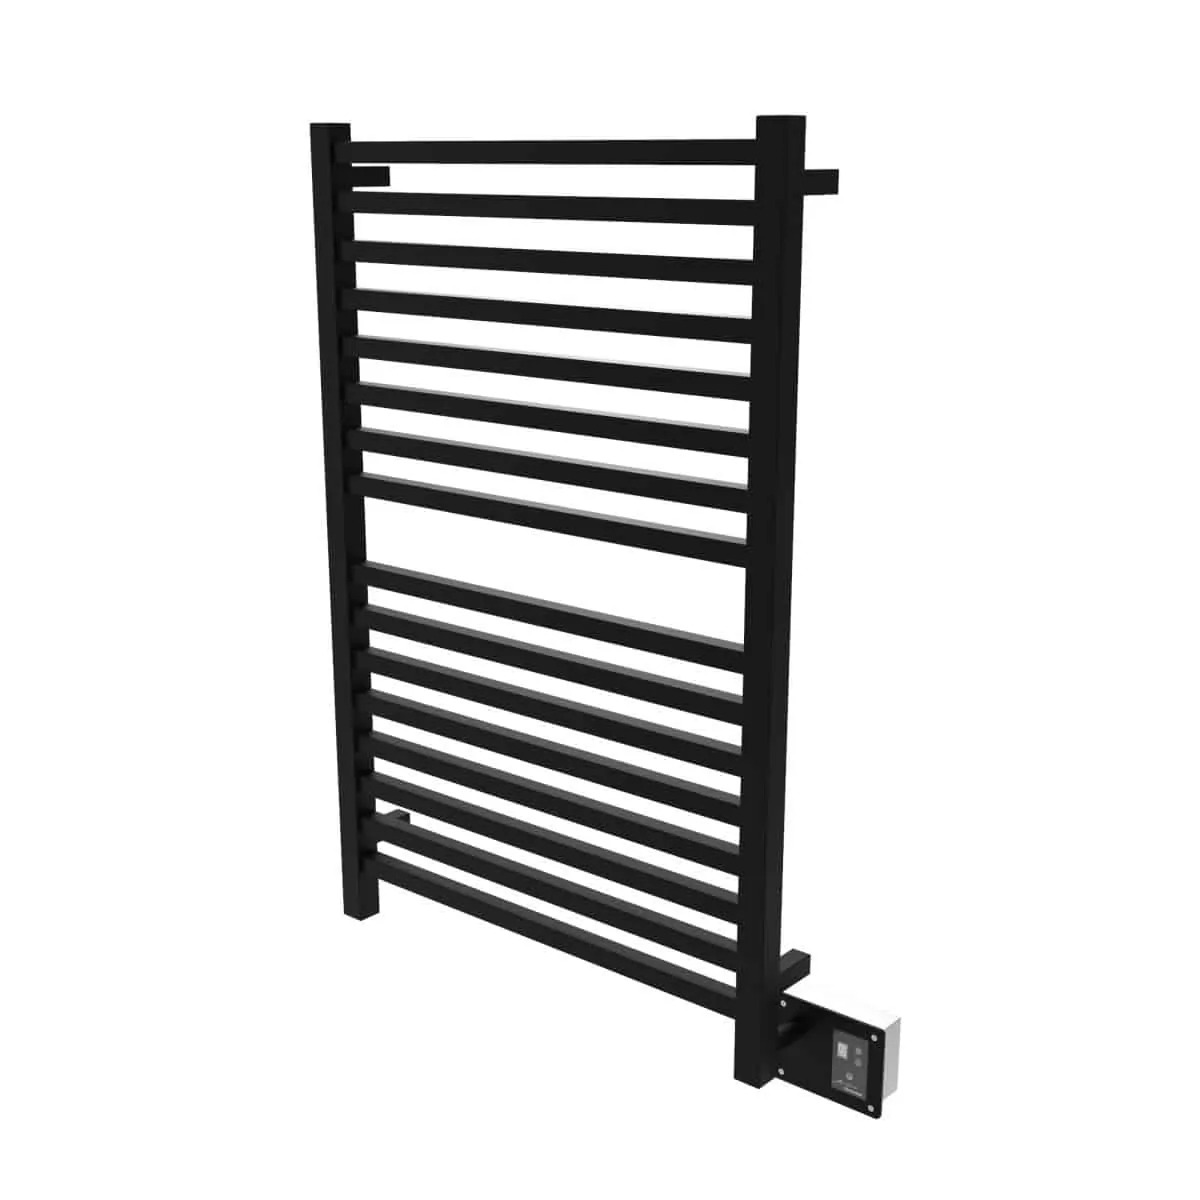 Amba Q2842MB Quadro Heated Towel Rack - Matte Black